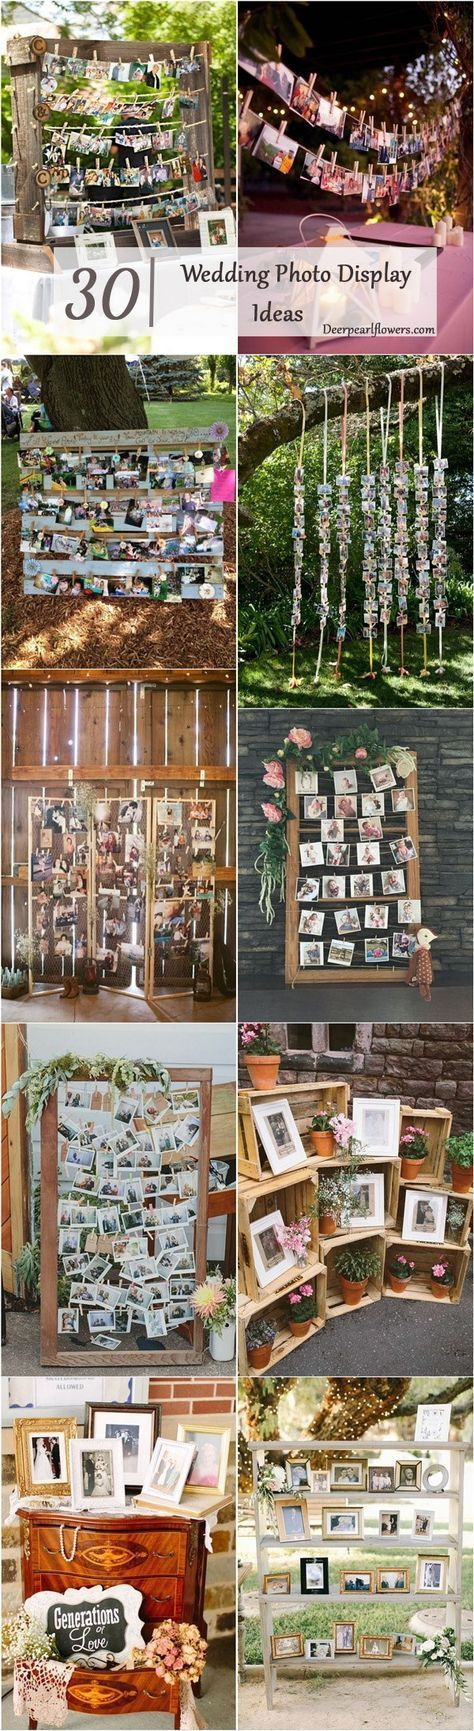 Mexican wedding decoration ideas  rustic wedding photo display wedding decor ideas